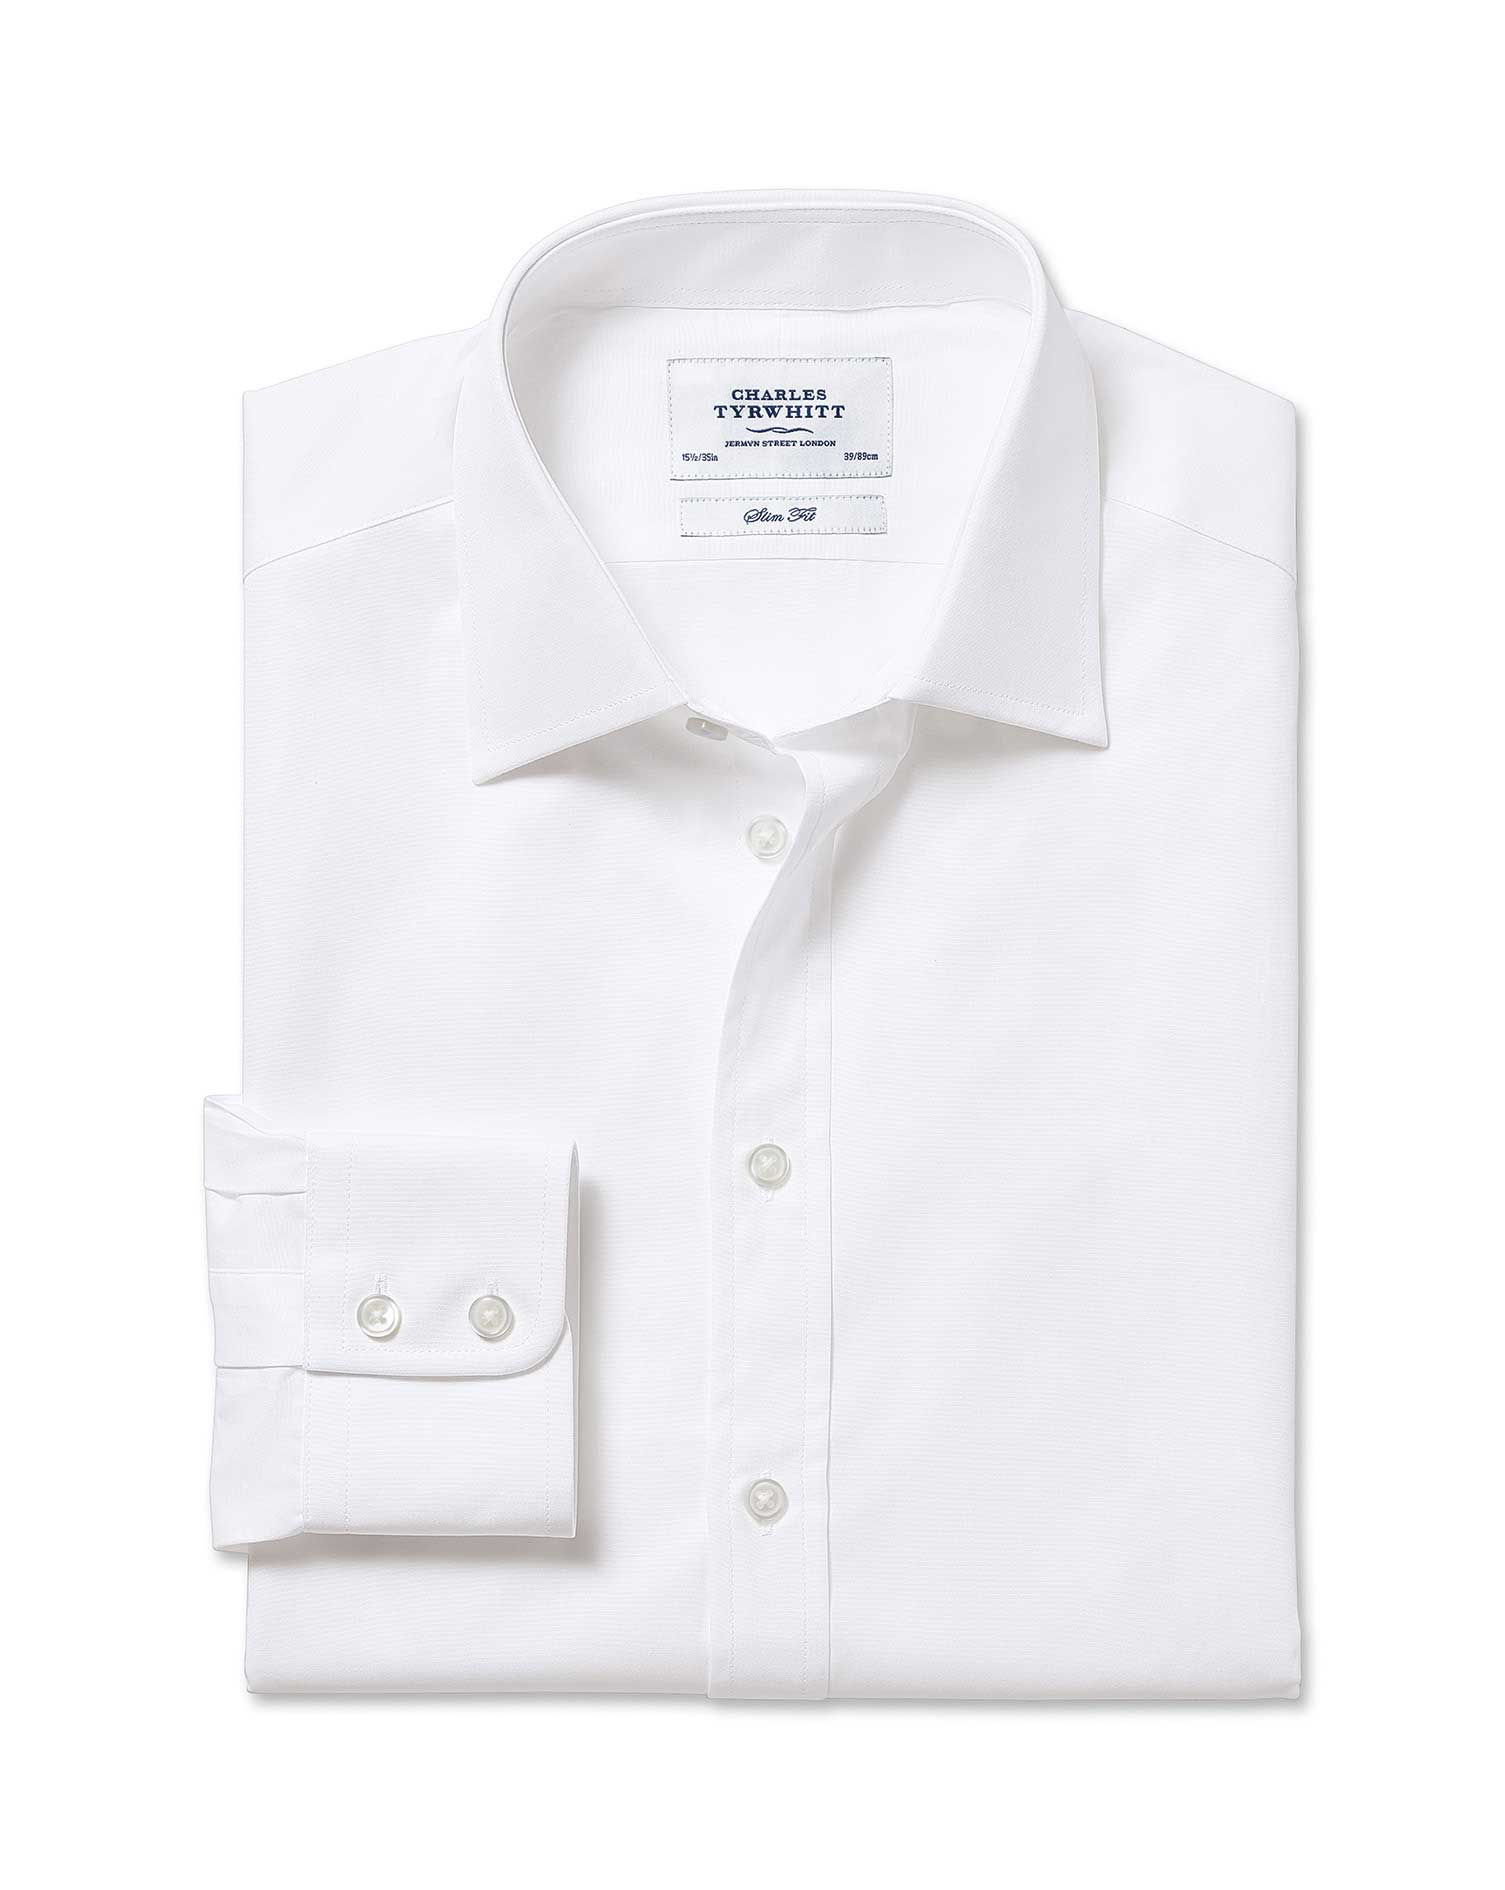 Slim Fit Egyptian Cotton Poplin White Formal Shirt Double Cuff Size 15/33 by Charles Tyrwhitt